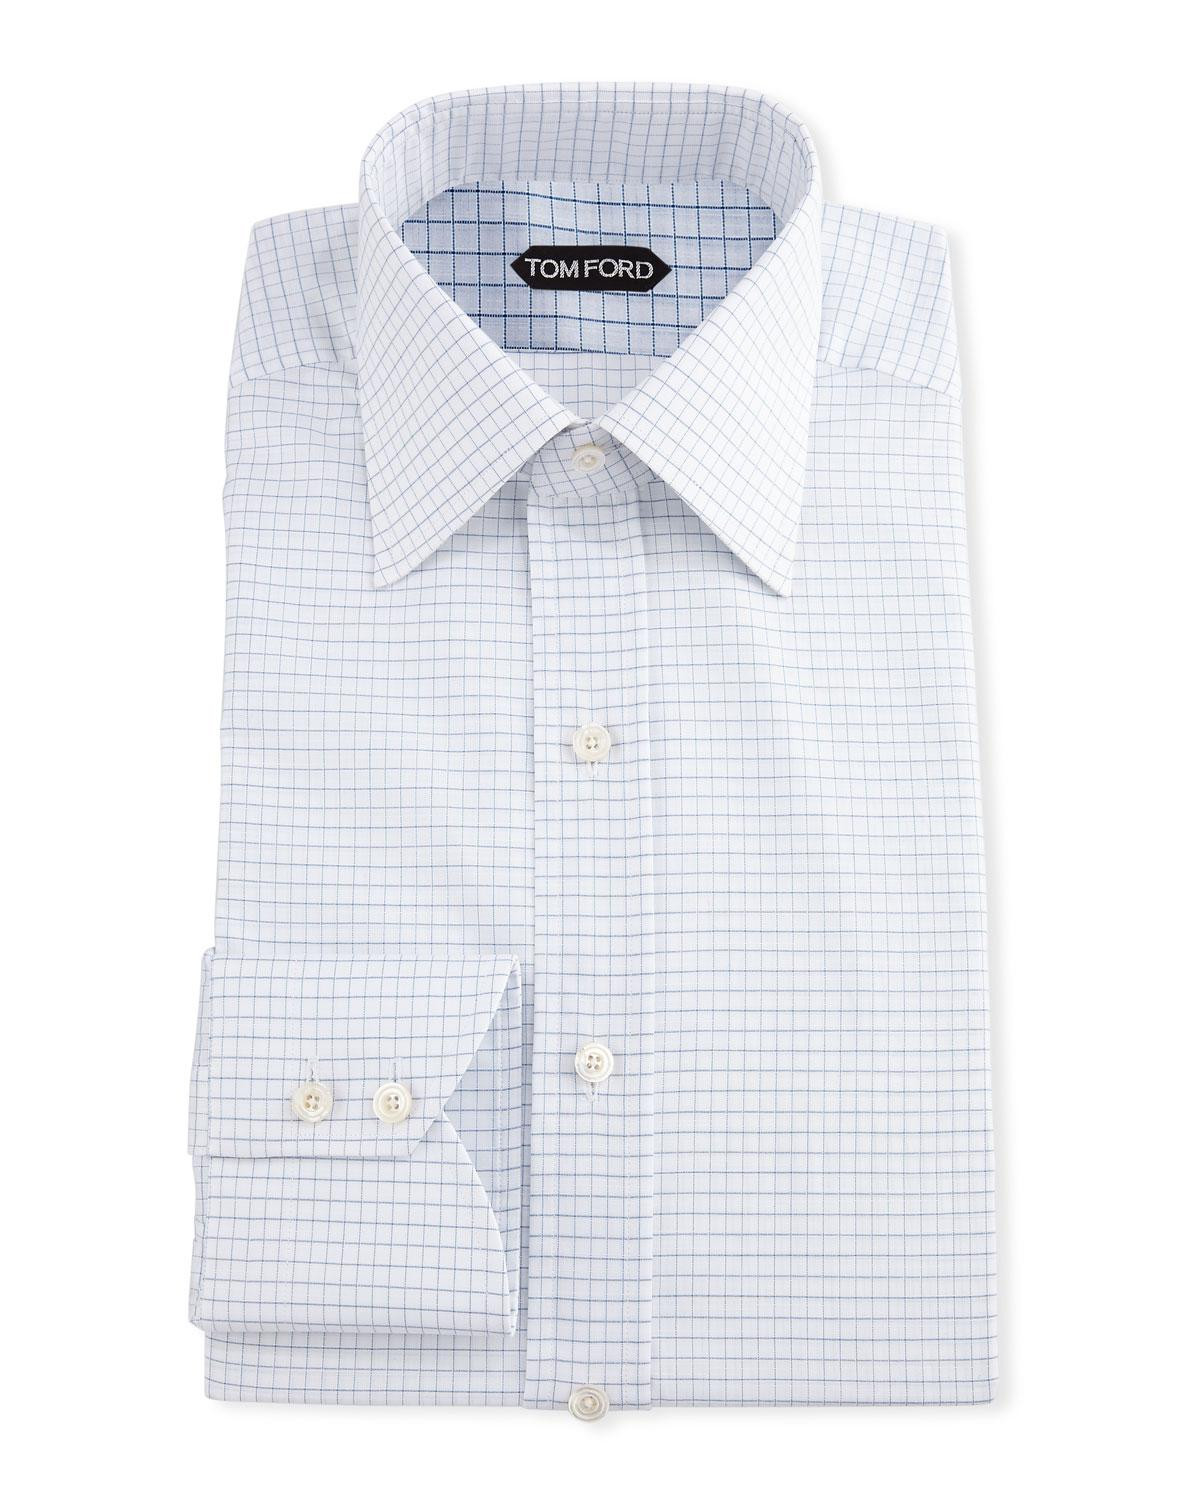 Lyst Tom Ford Mens Small Check Dress Shirt In Blue For Men